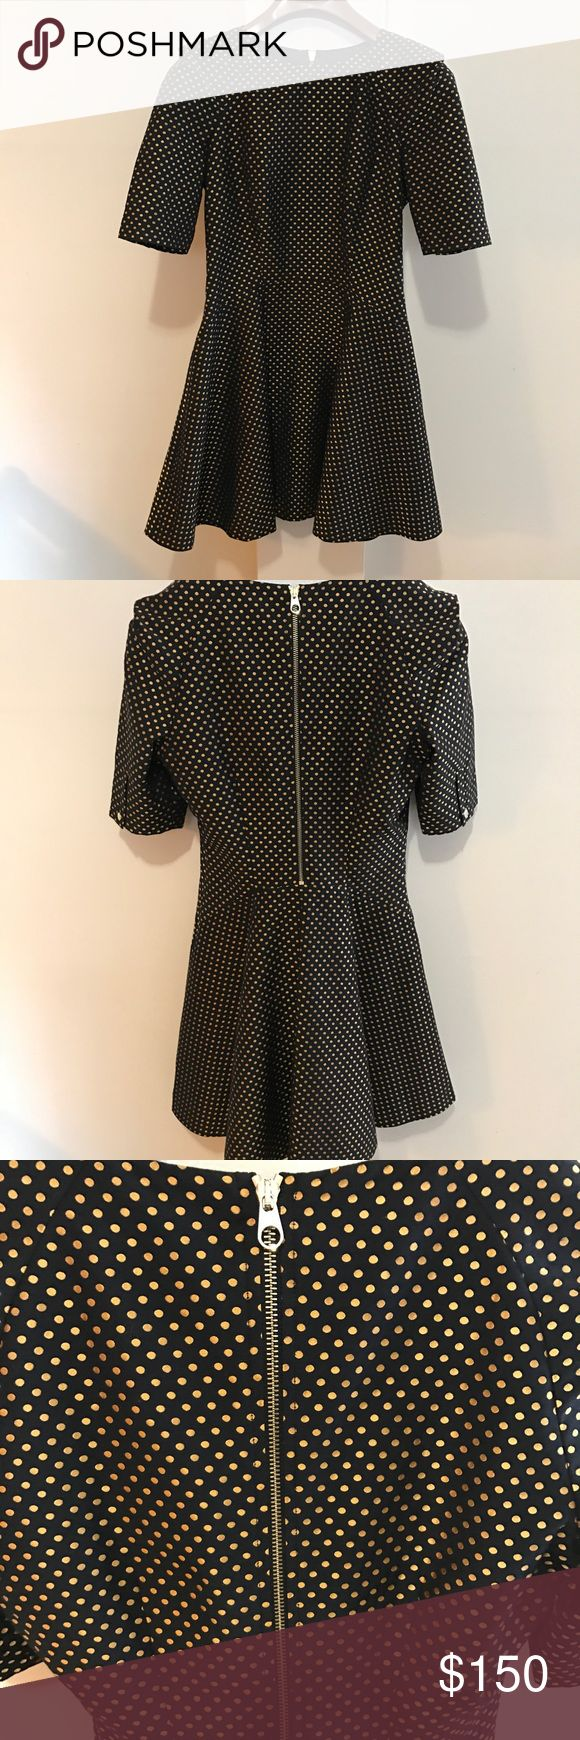 Baker BY TED BAKER DRESS BLACK DRESS WITH GOLD POLKADOTS. Baker by Ted Baker Dresses Midi